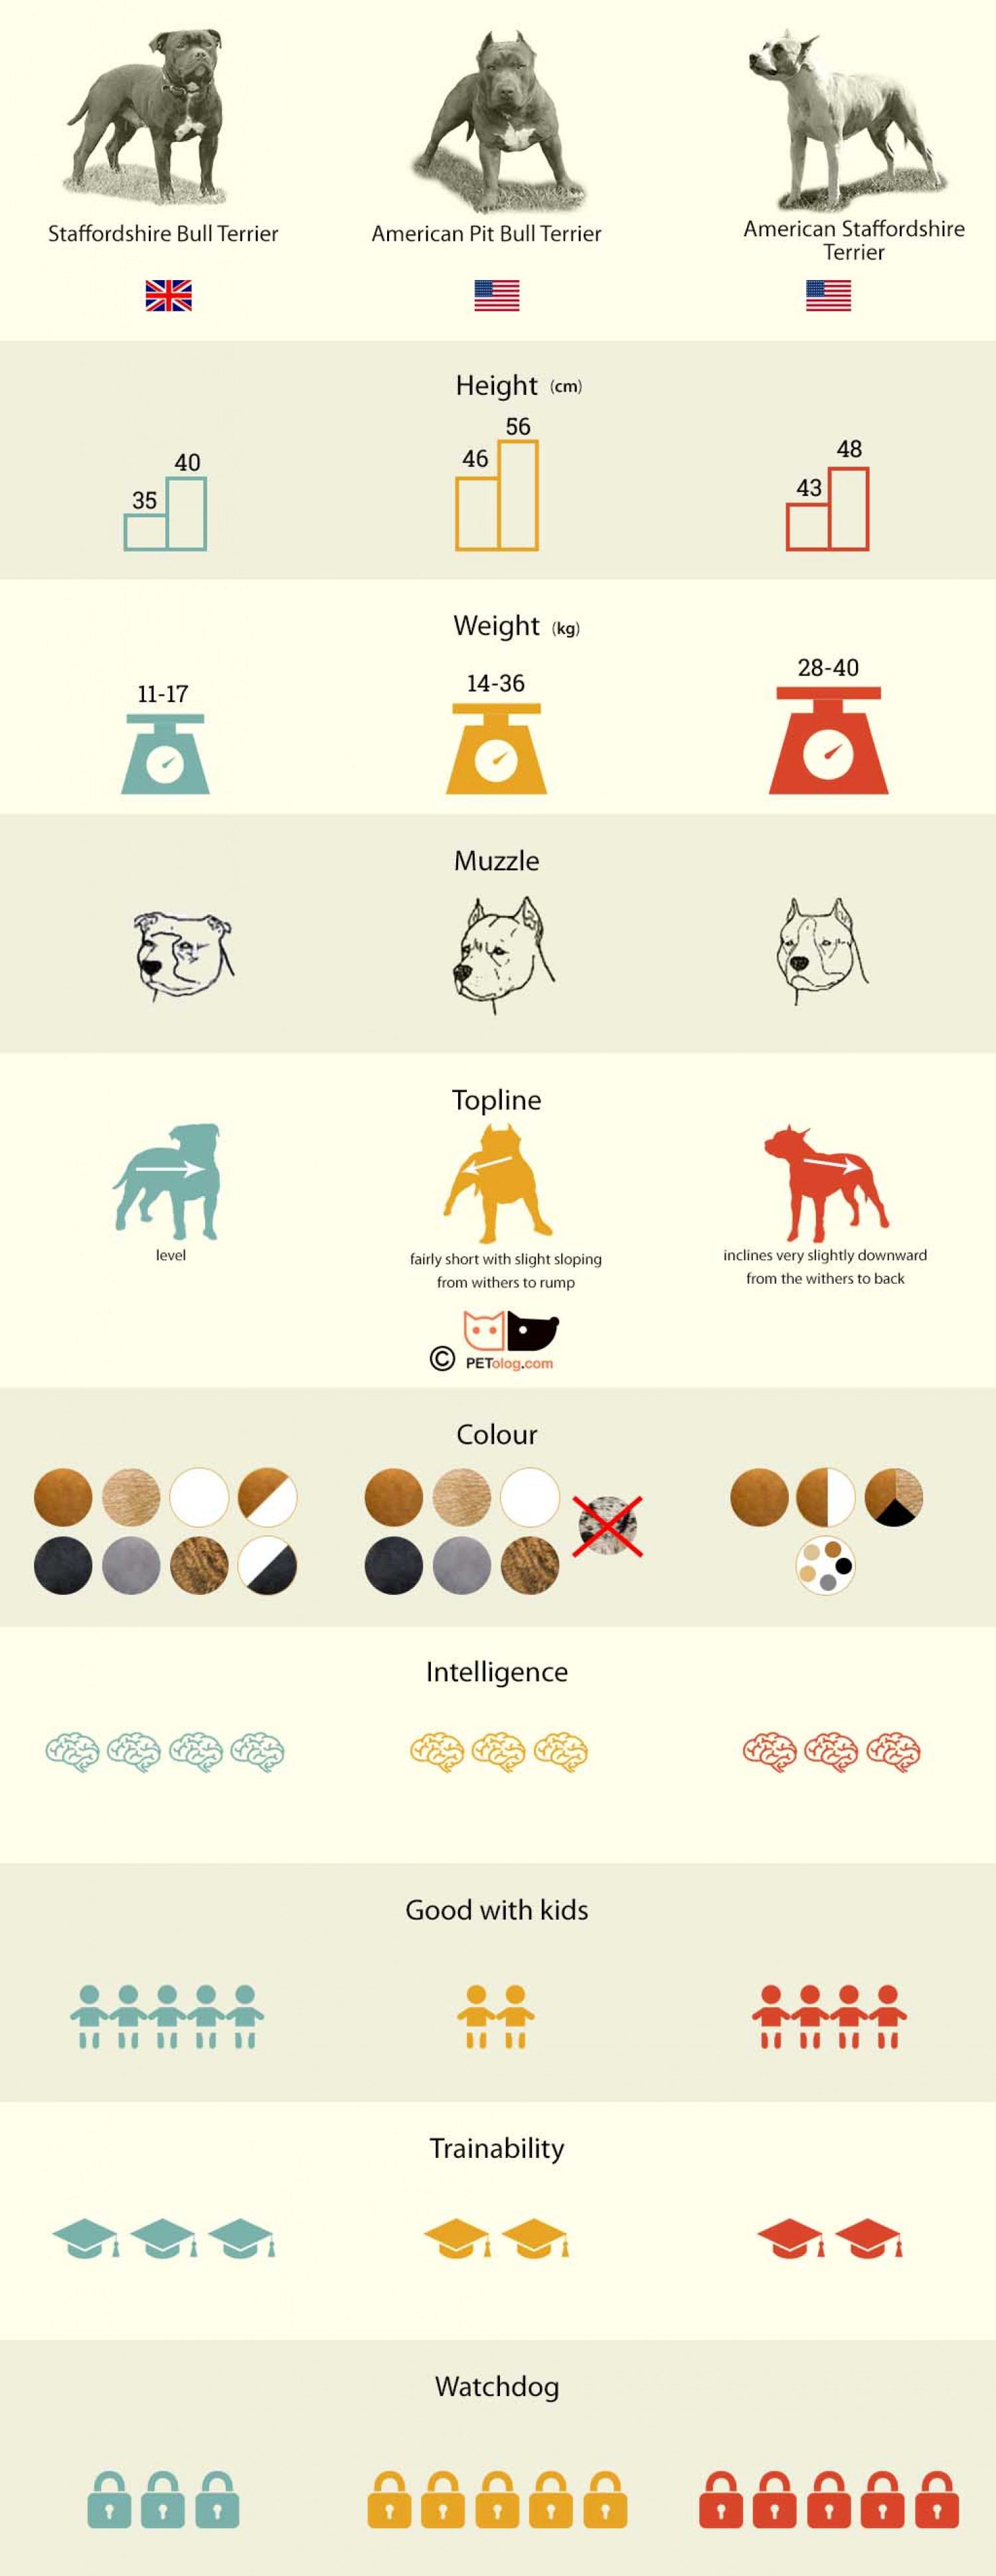 Staff or Pitbull - infographic Infographic